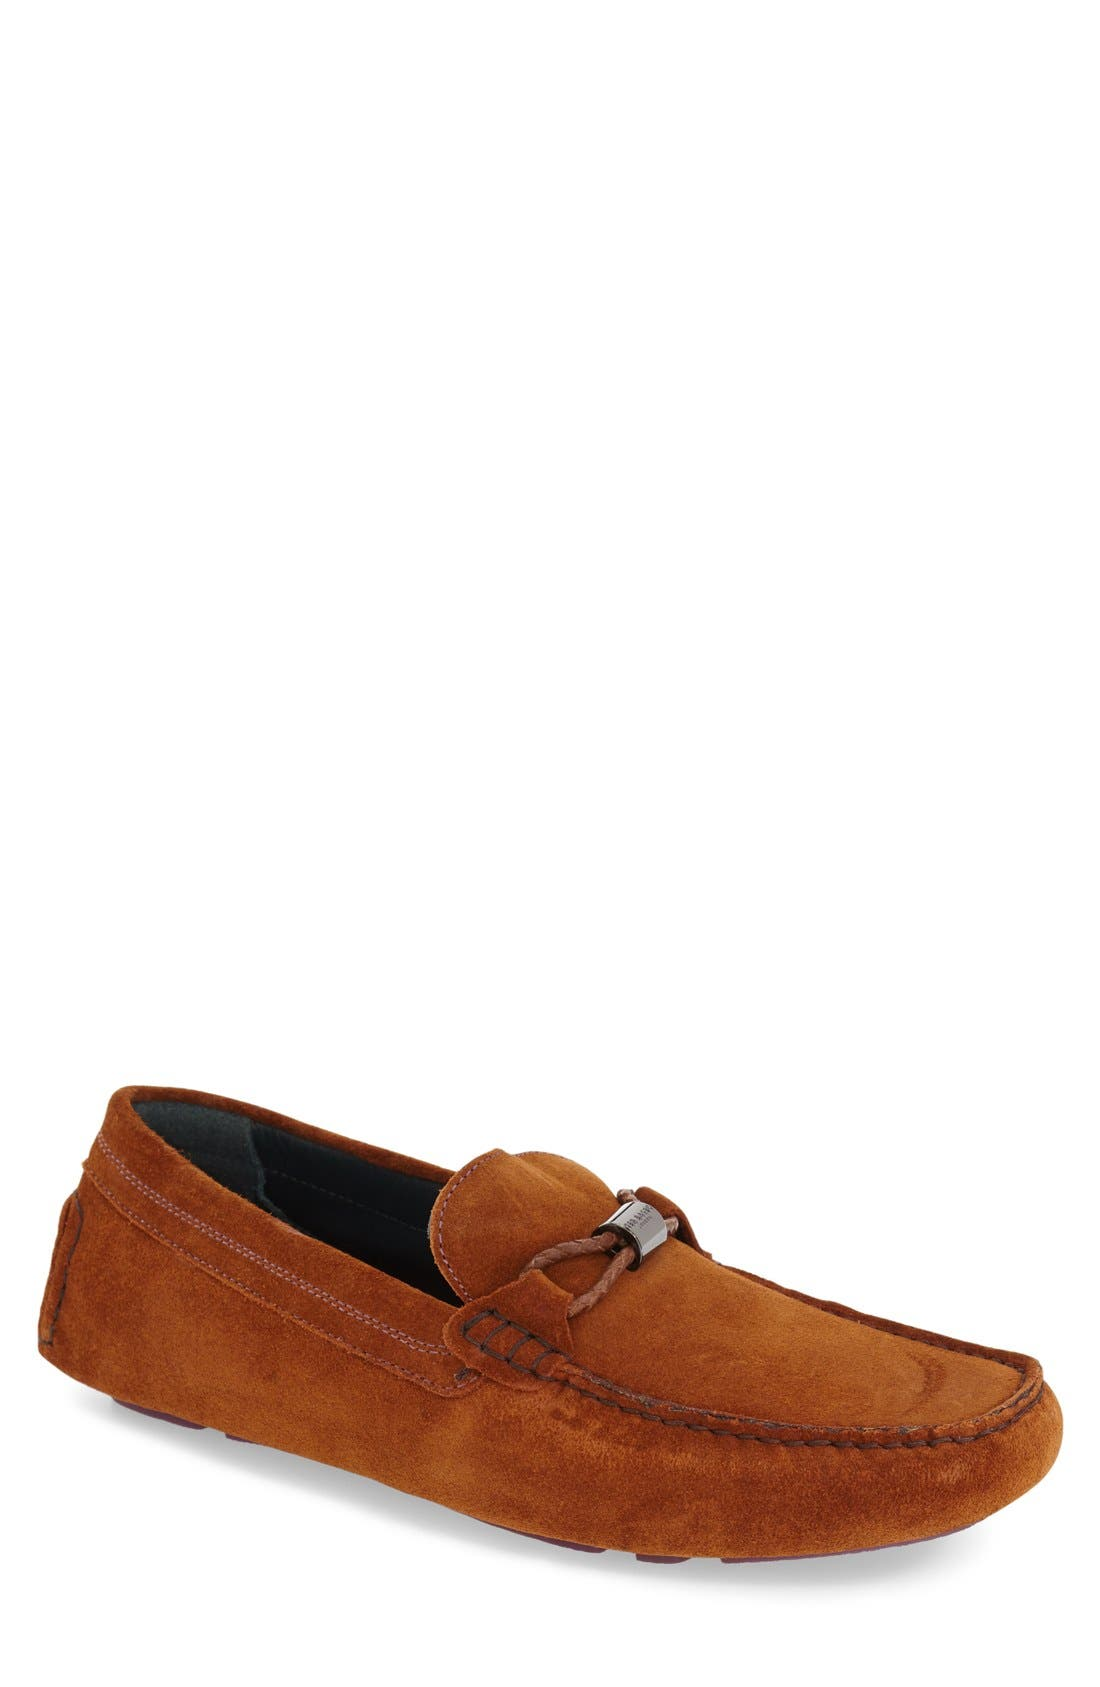 Alternate Image 1 Selected - Ted Baker London 'Carlsun 2' Driving Shoe (Men)